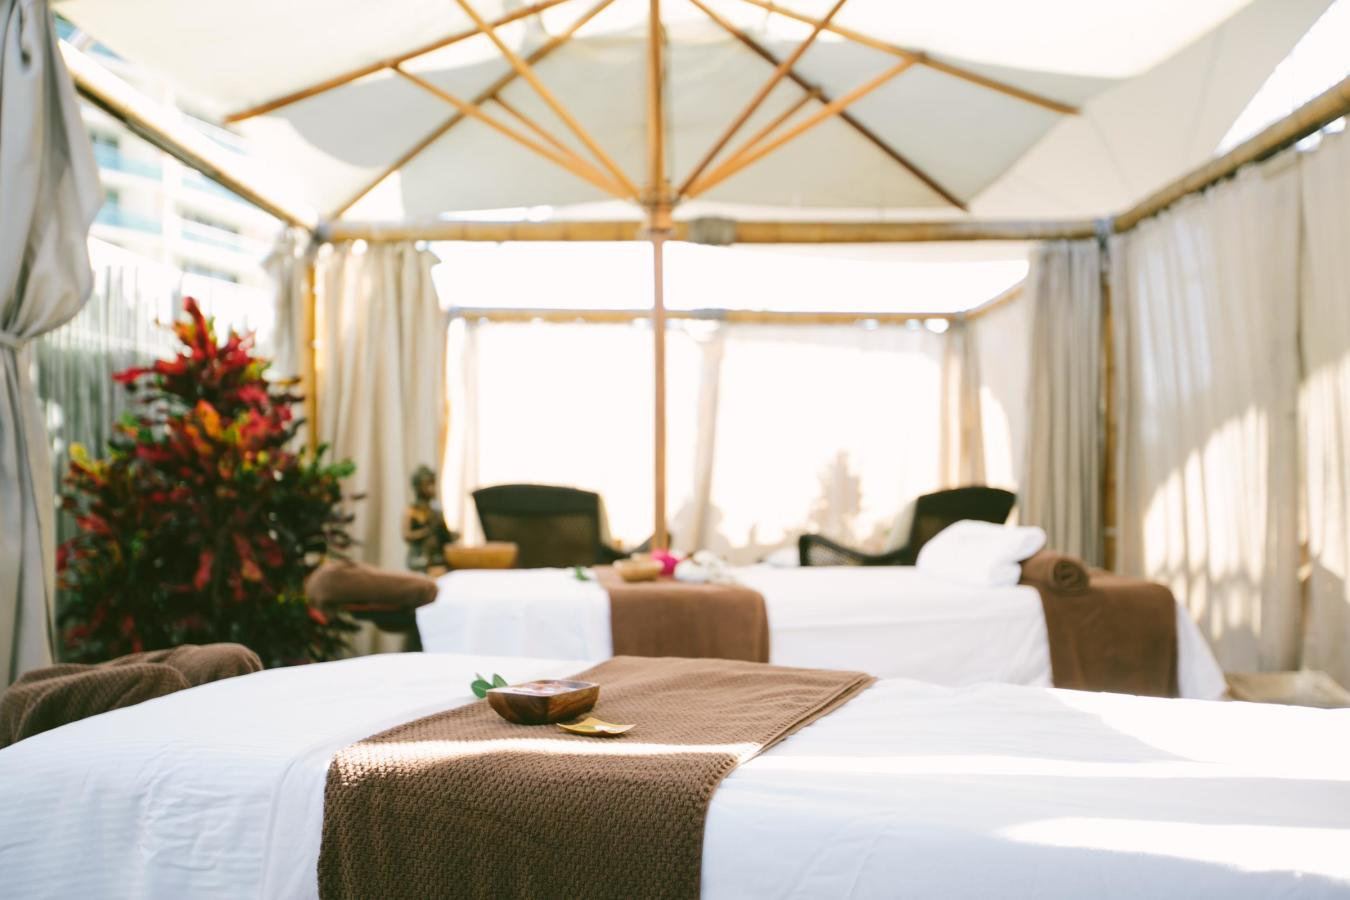 The Betsy - South Beach Wellness Garden and Spa